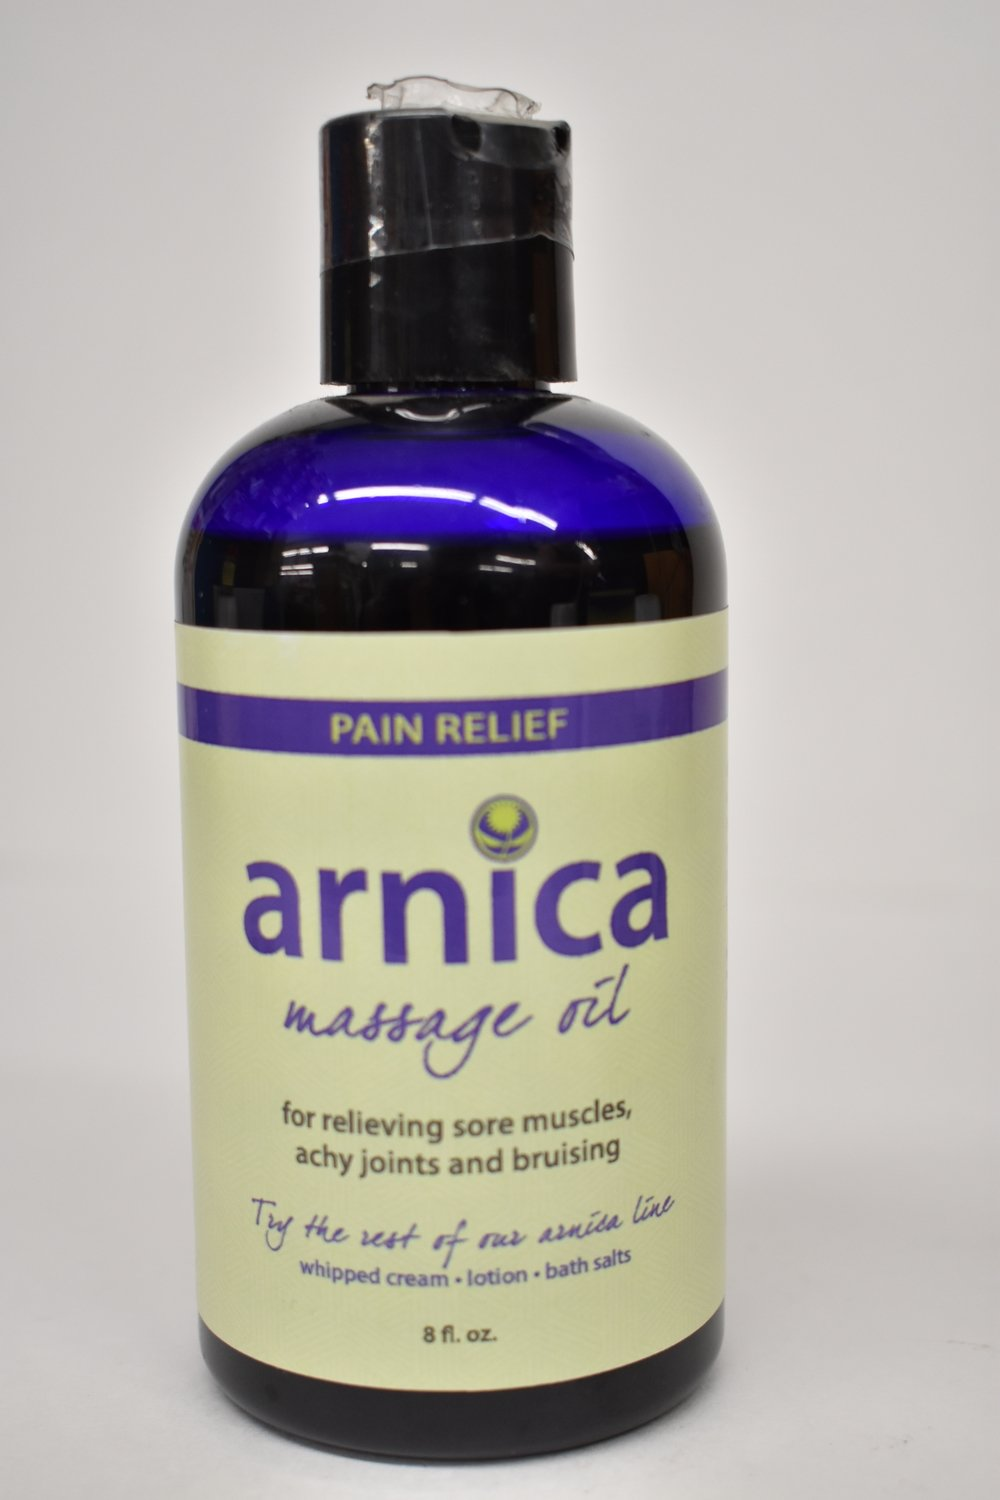 Arnica Lotion for pain relief